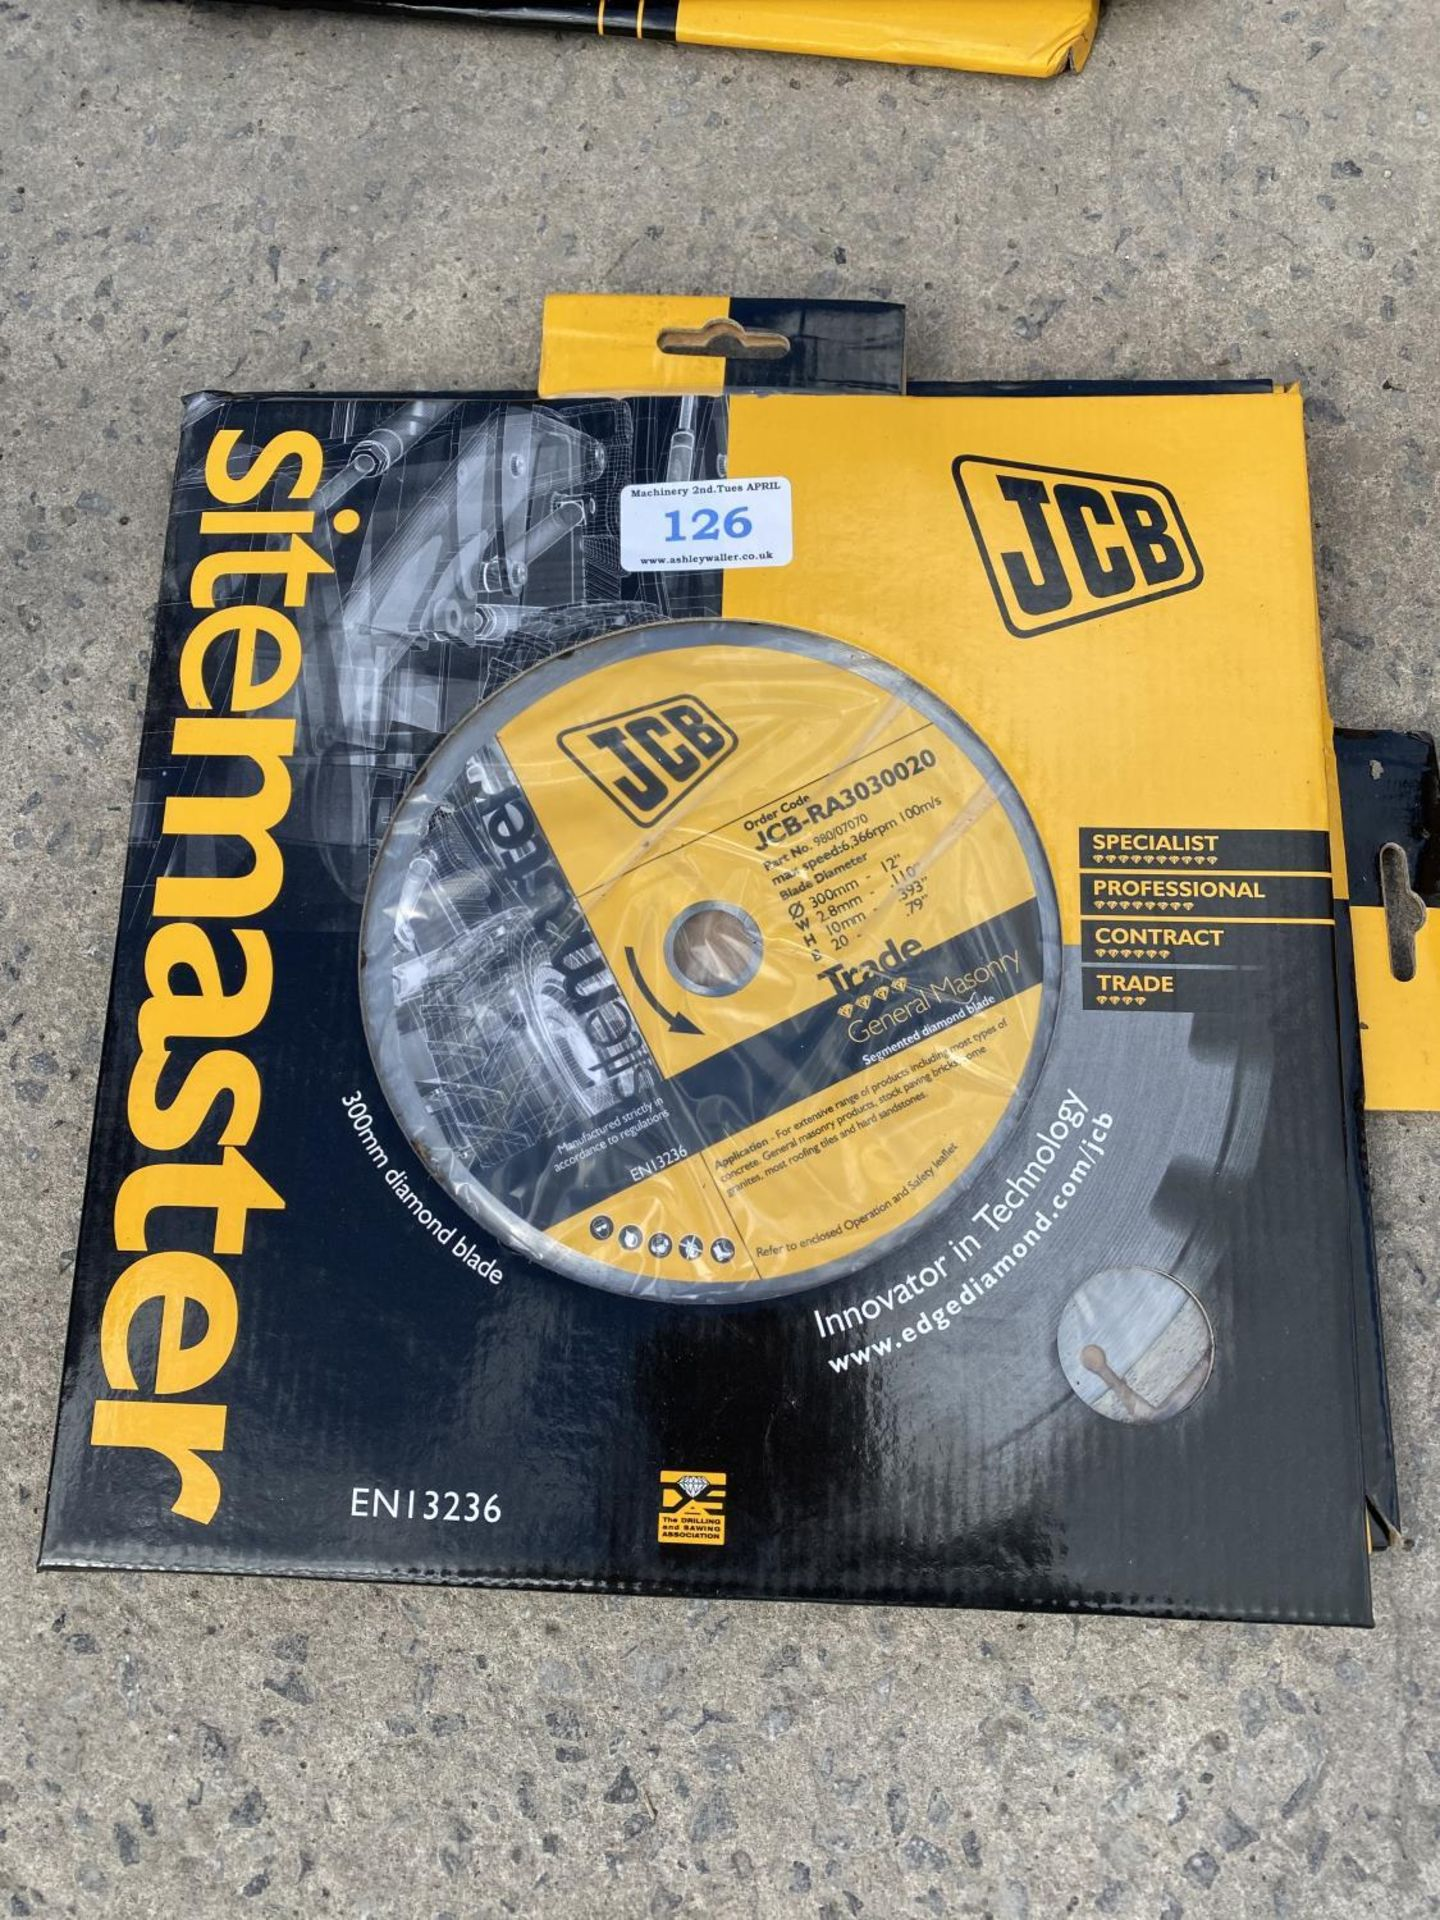 TWO JCB STONE CUTTING DISCS + VAT